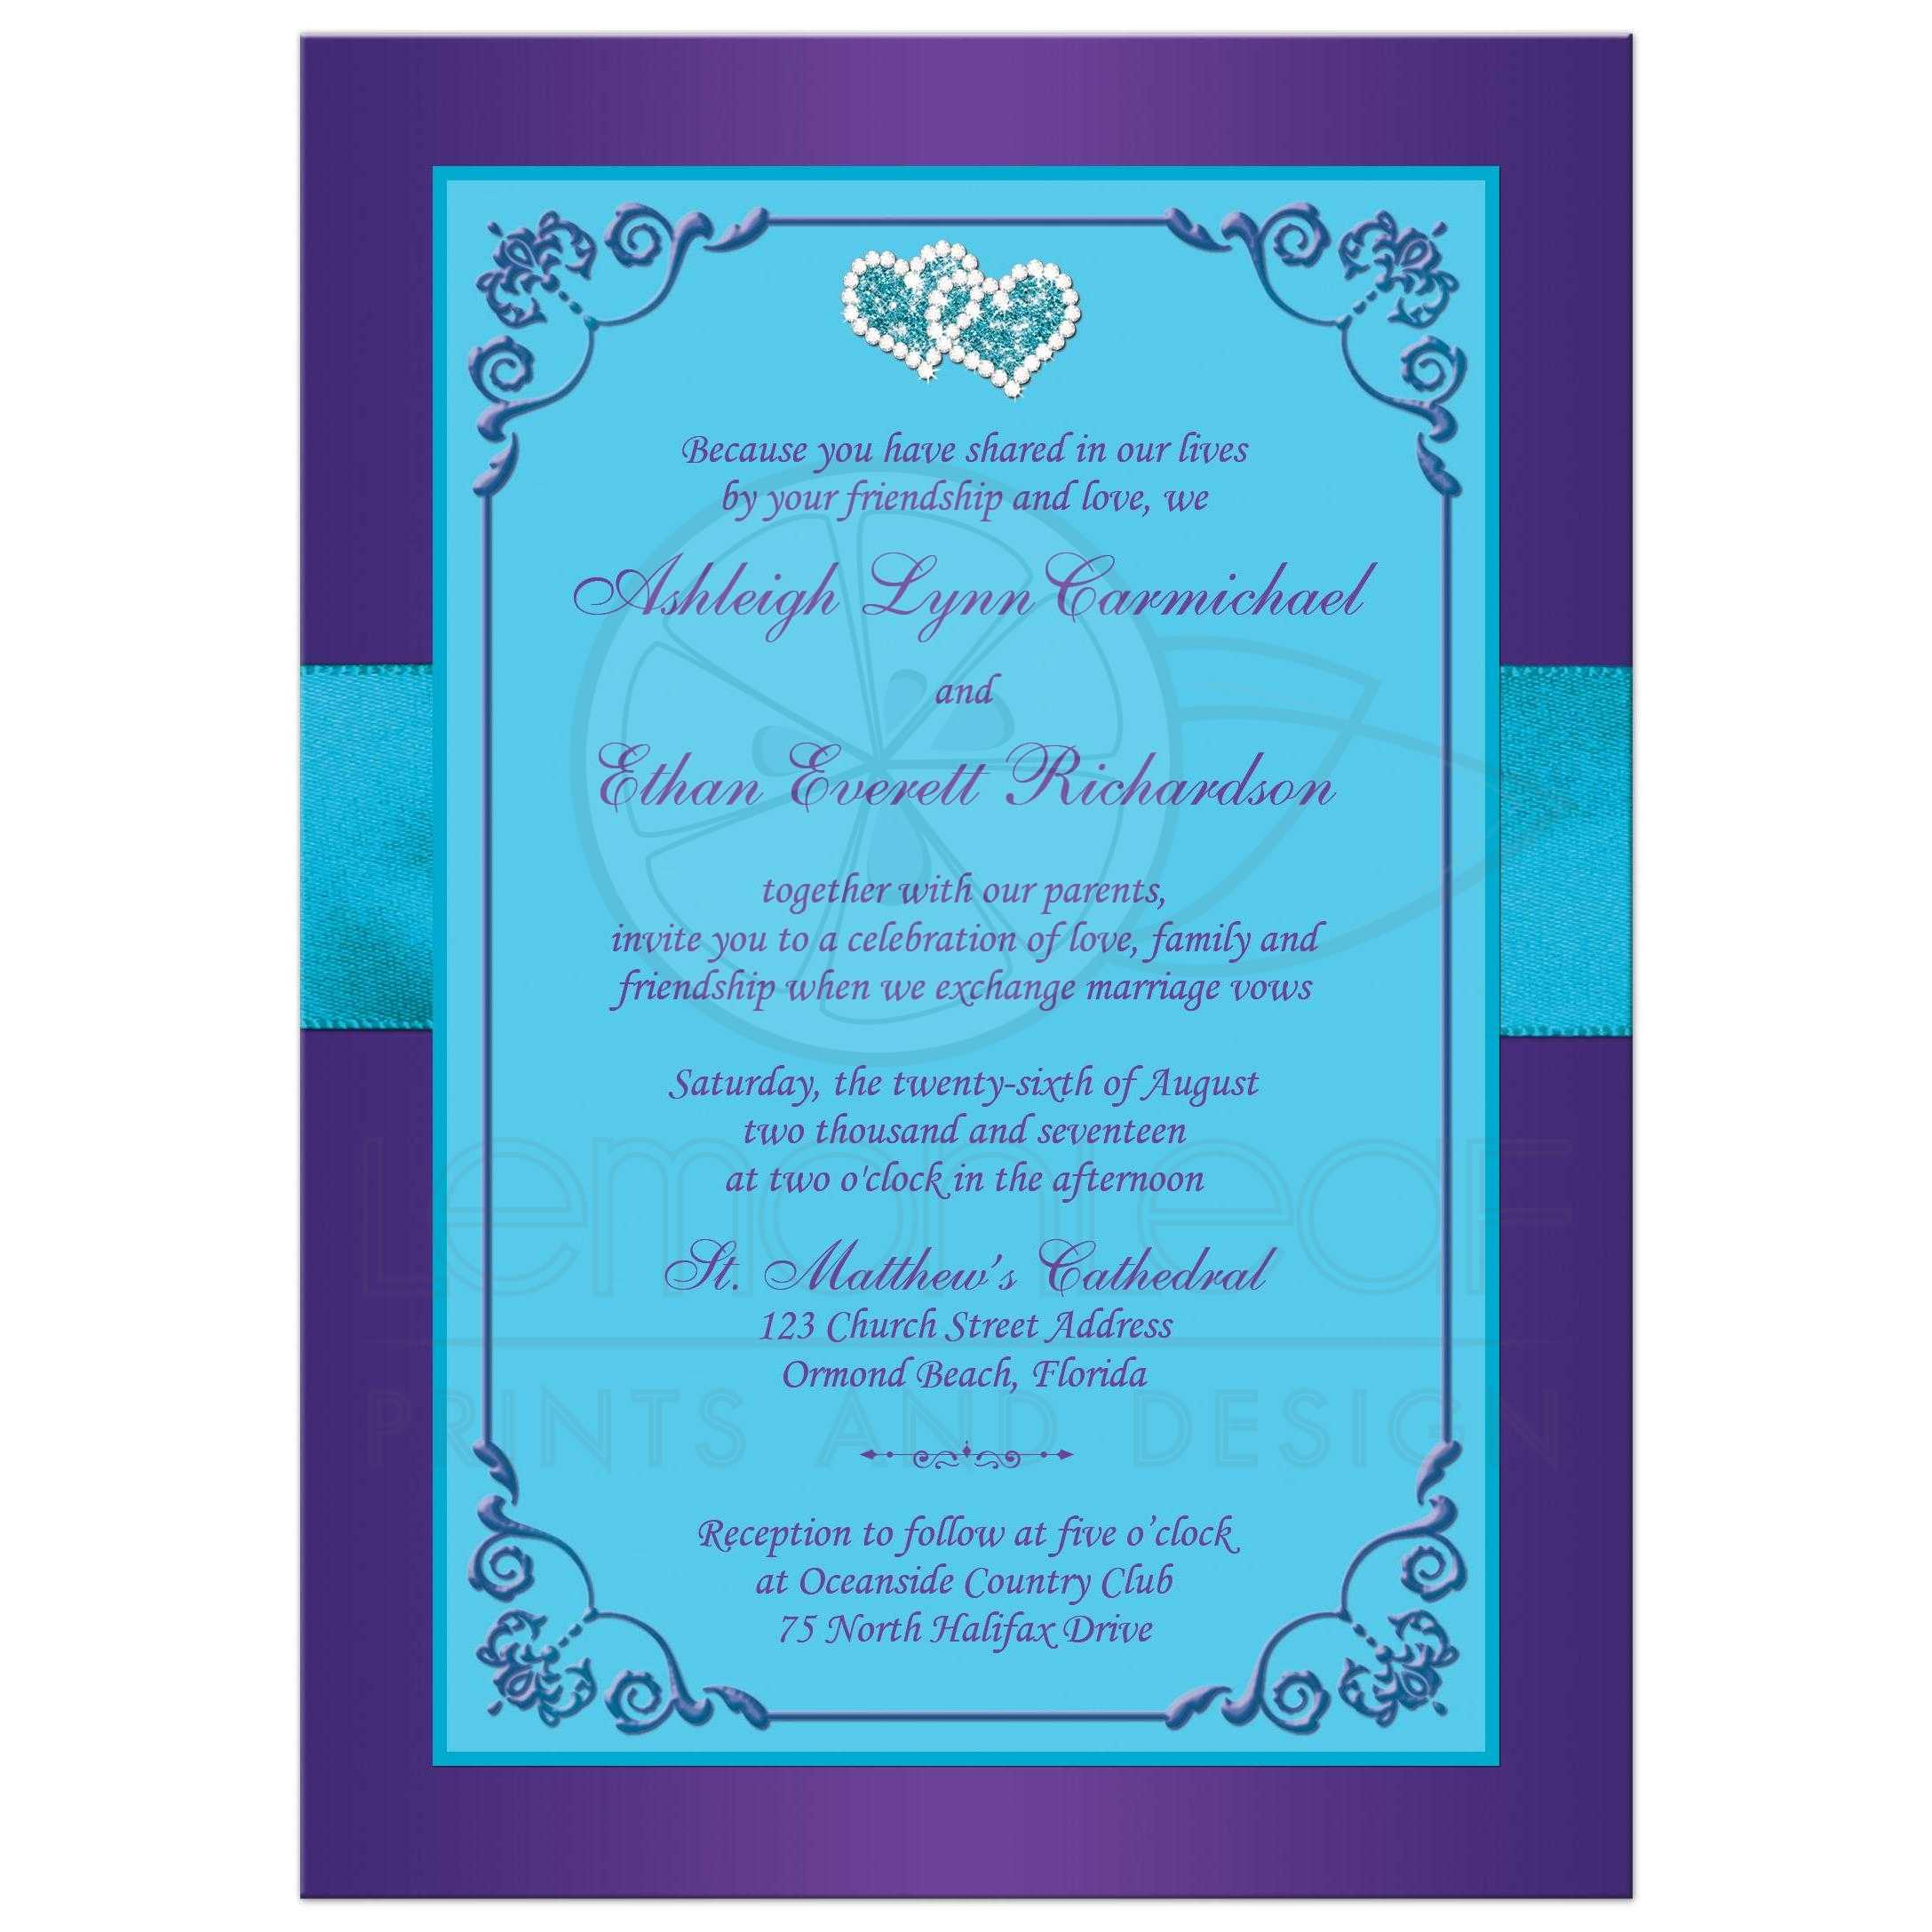 Wedding Invitation | Purple, Teal Blue Floral | PRINTED Ribbon/Bow ...